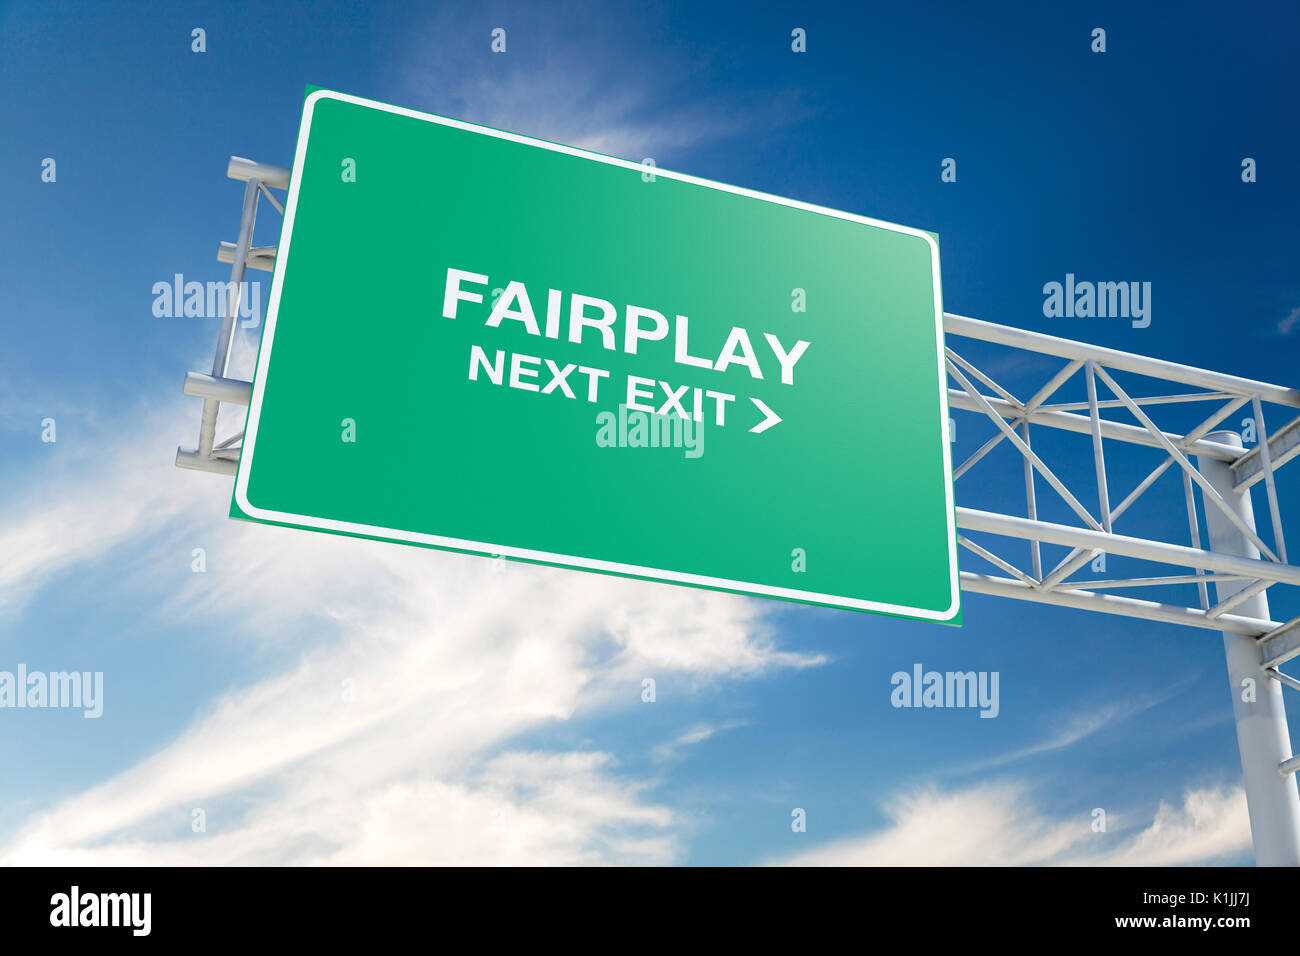 Hi-res 3D highway 'Fairplay' road sign against a blue sky with cloudscape and 'Next Exit' message. 3D rendering. - Stock Image